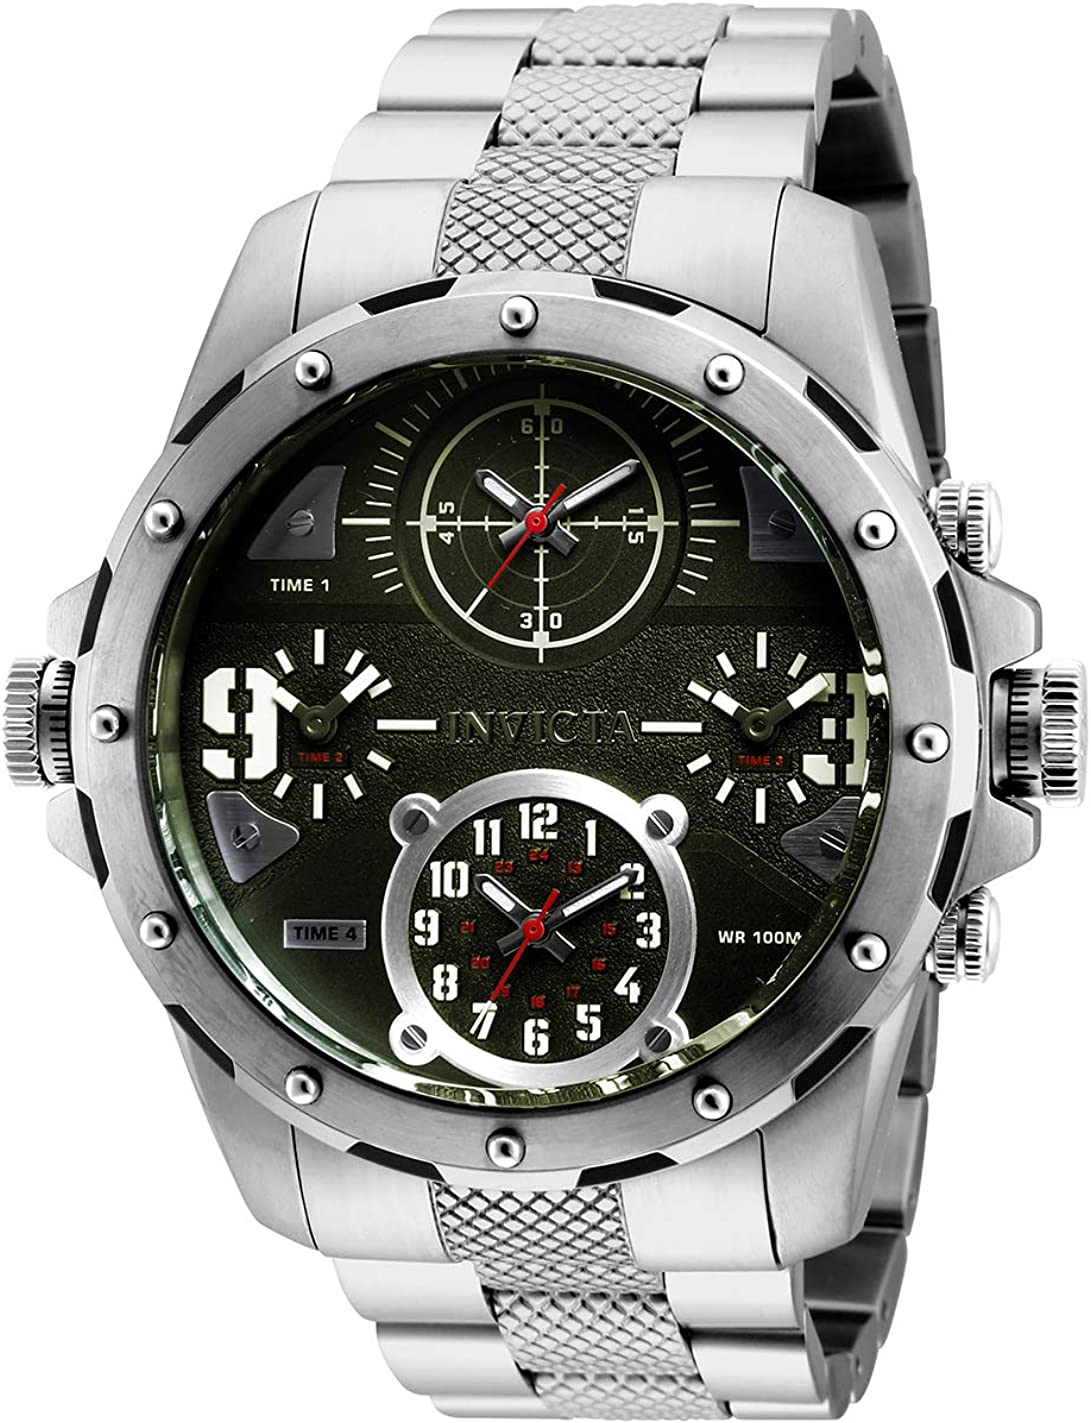 Invicta Men's Coalition Forces Ranking TOP8 Quartz Minneapolis Mall Watch Steel with Stainless